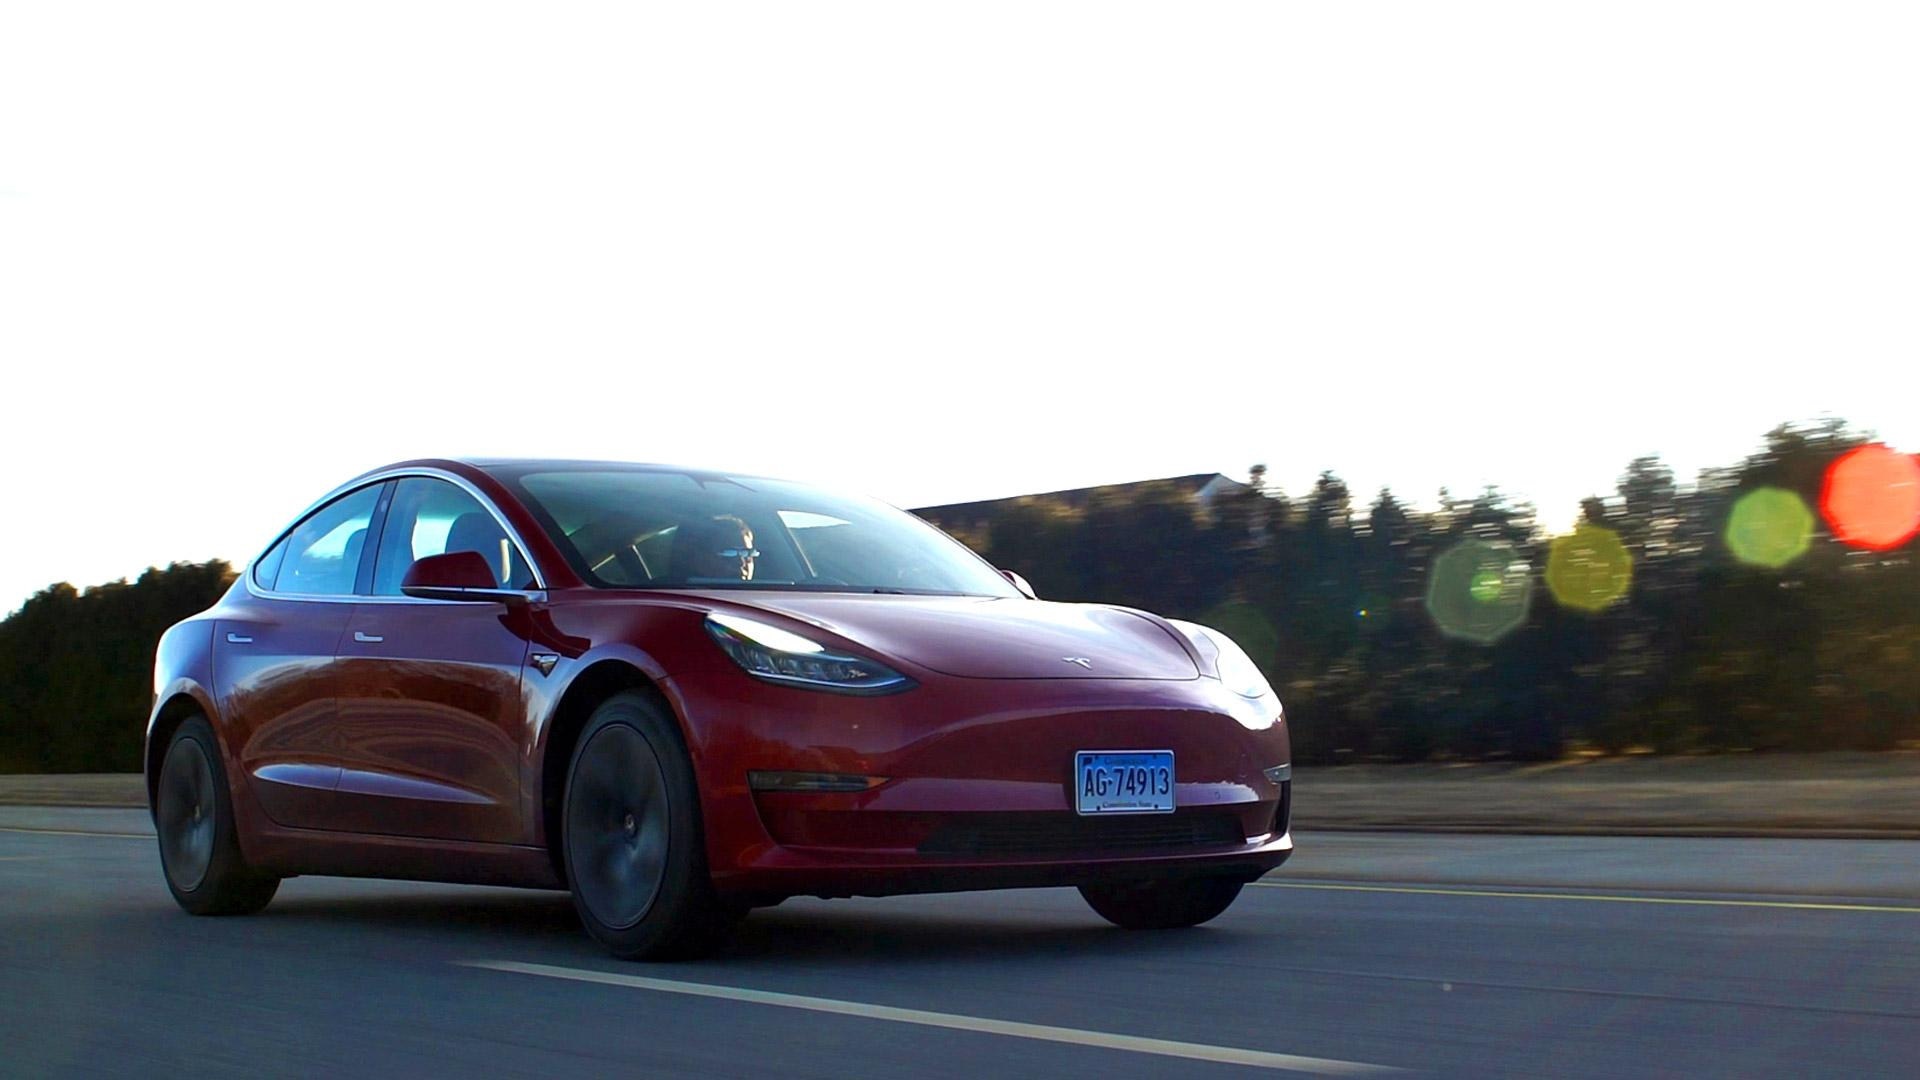 Talking Cars: What Tesla CEO Elon Musk Told CR About the Model 3